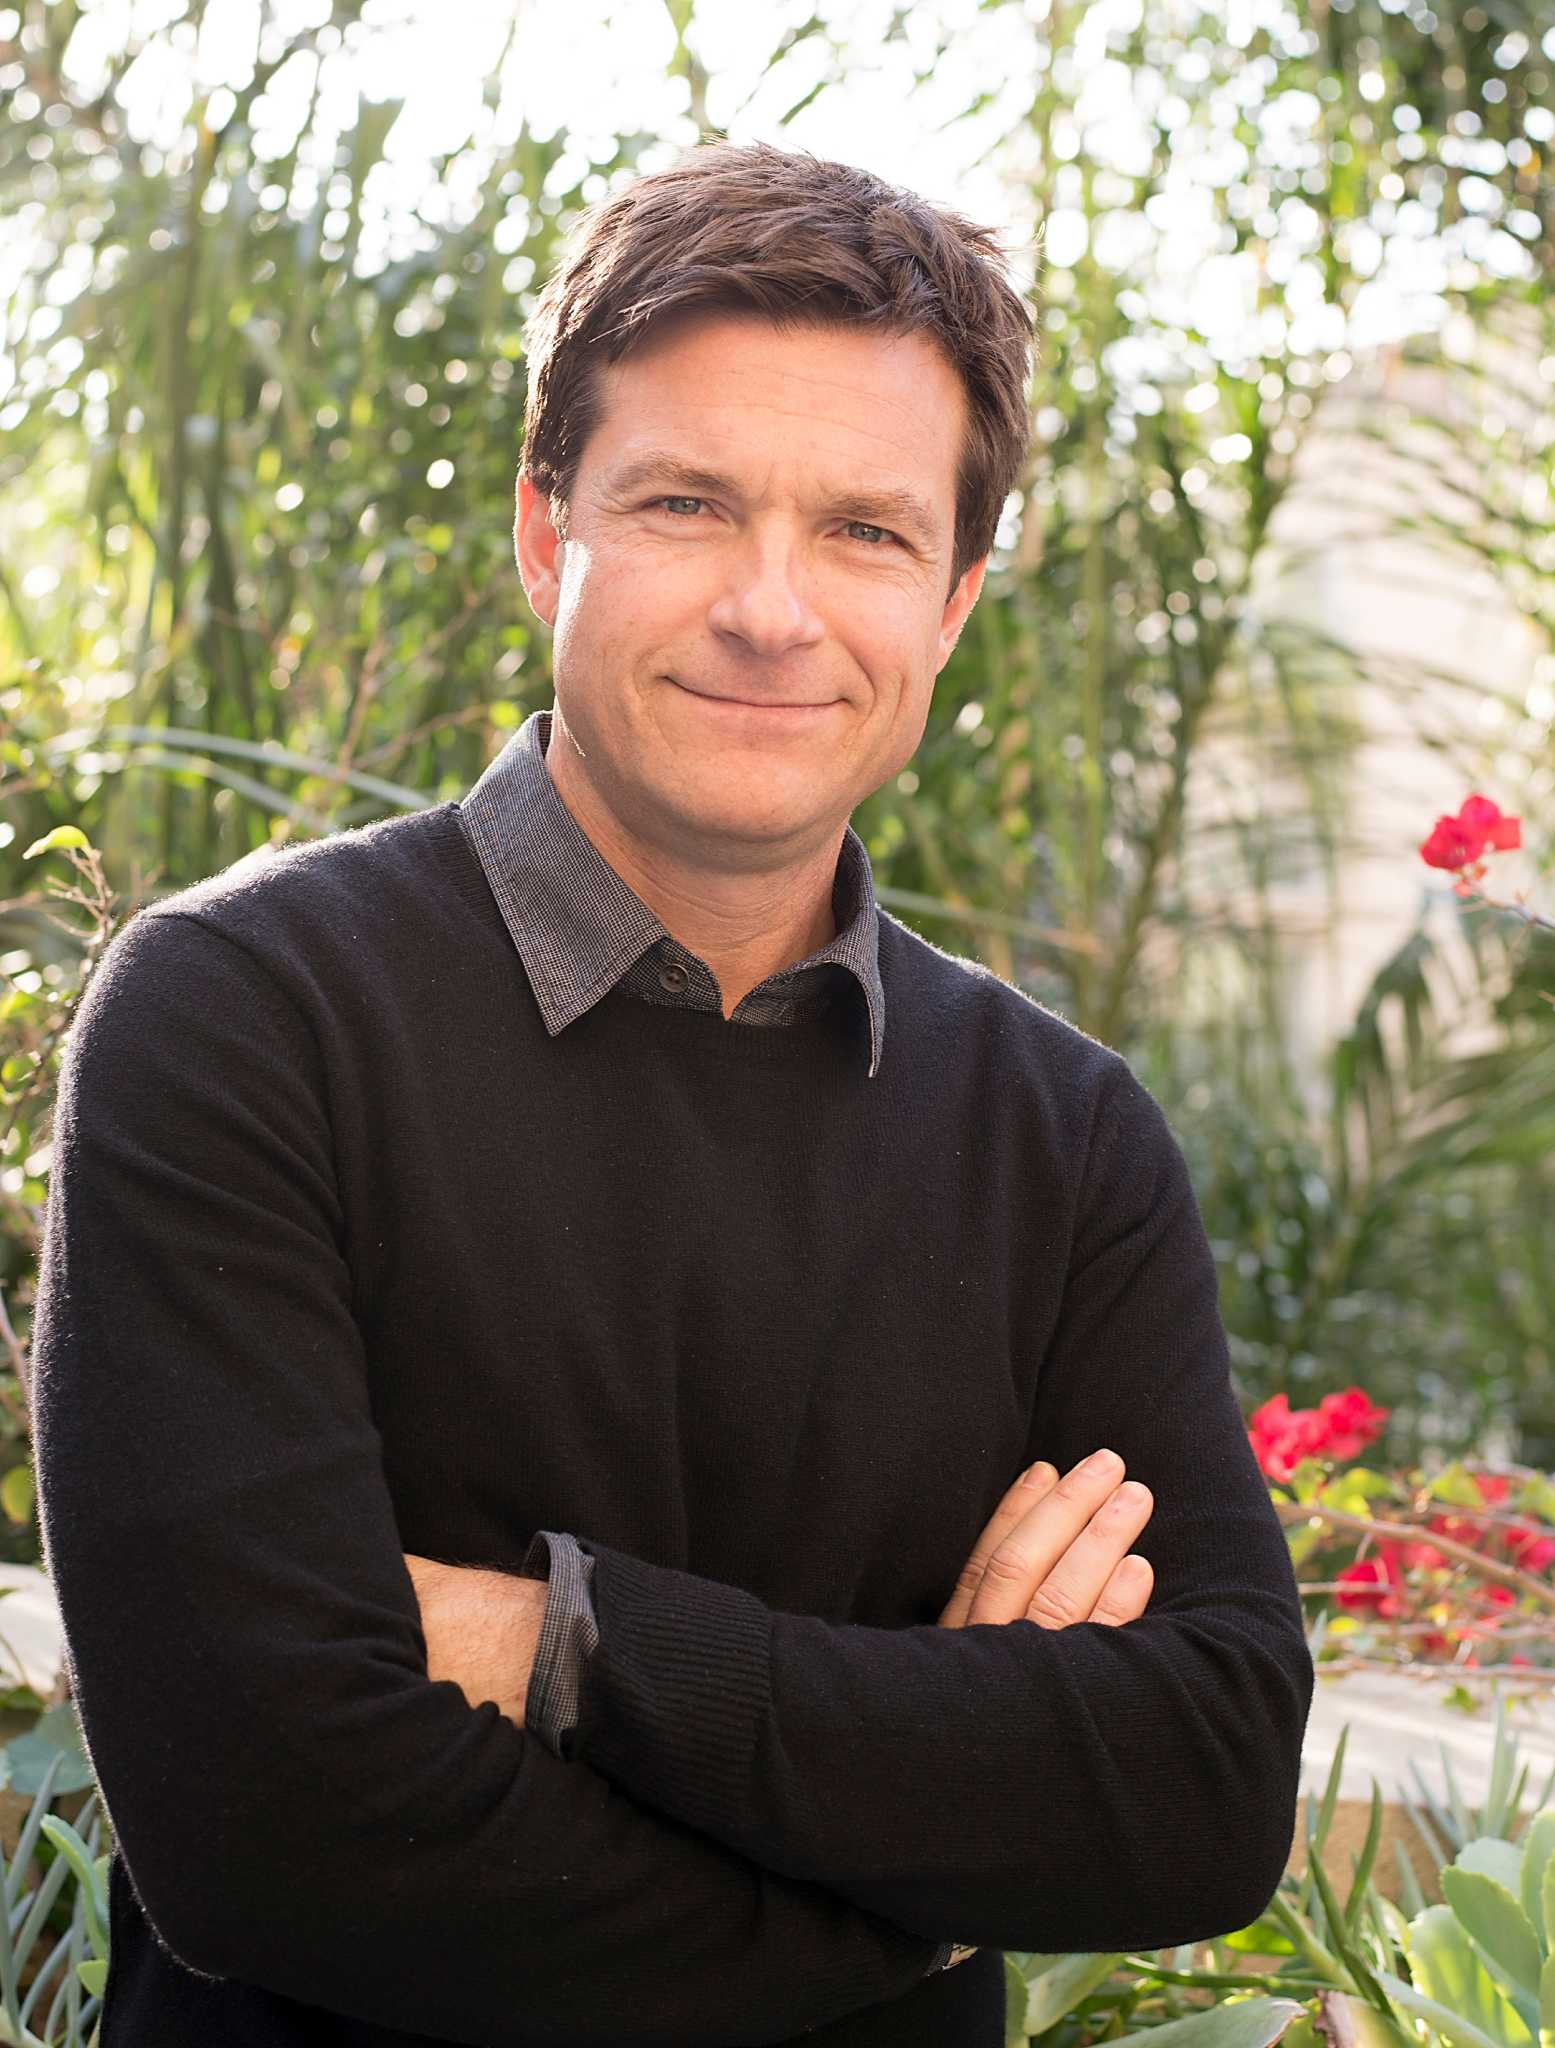 Jason Bateman casts his directorial spell in 'Bad Words' - Houston Chronicle